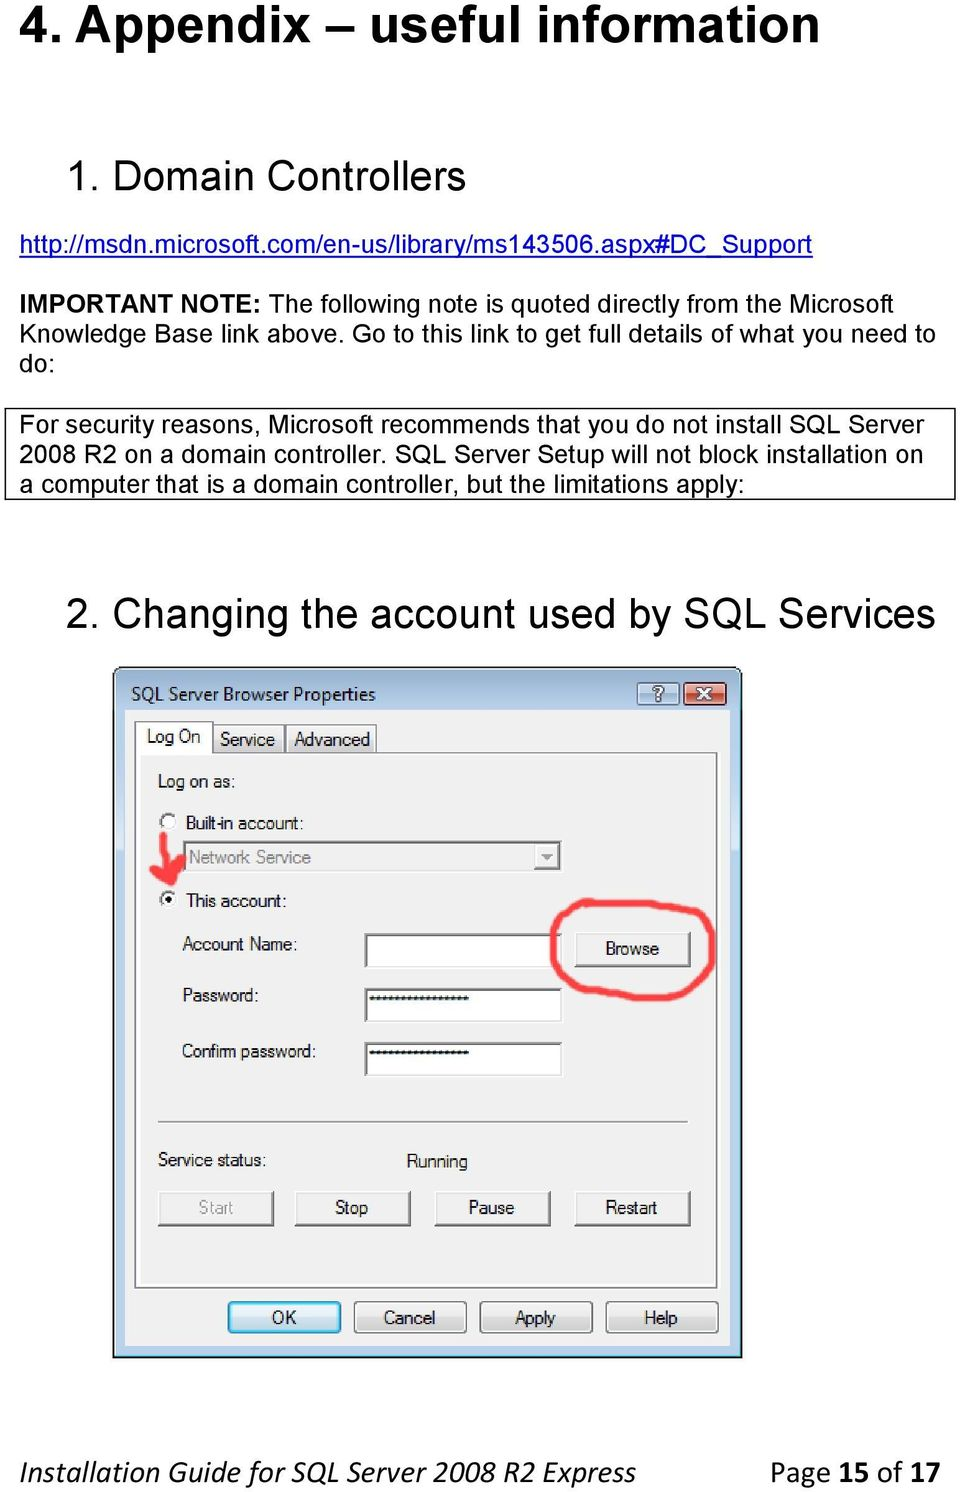 Go to this link to get full details of what you need to do: For security reasons, Microsoft recommends that you do not install SQL Server 2008 R2 on a